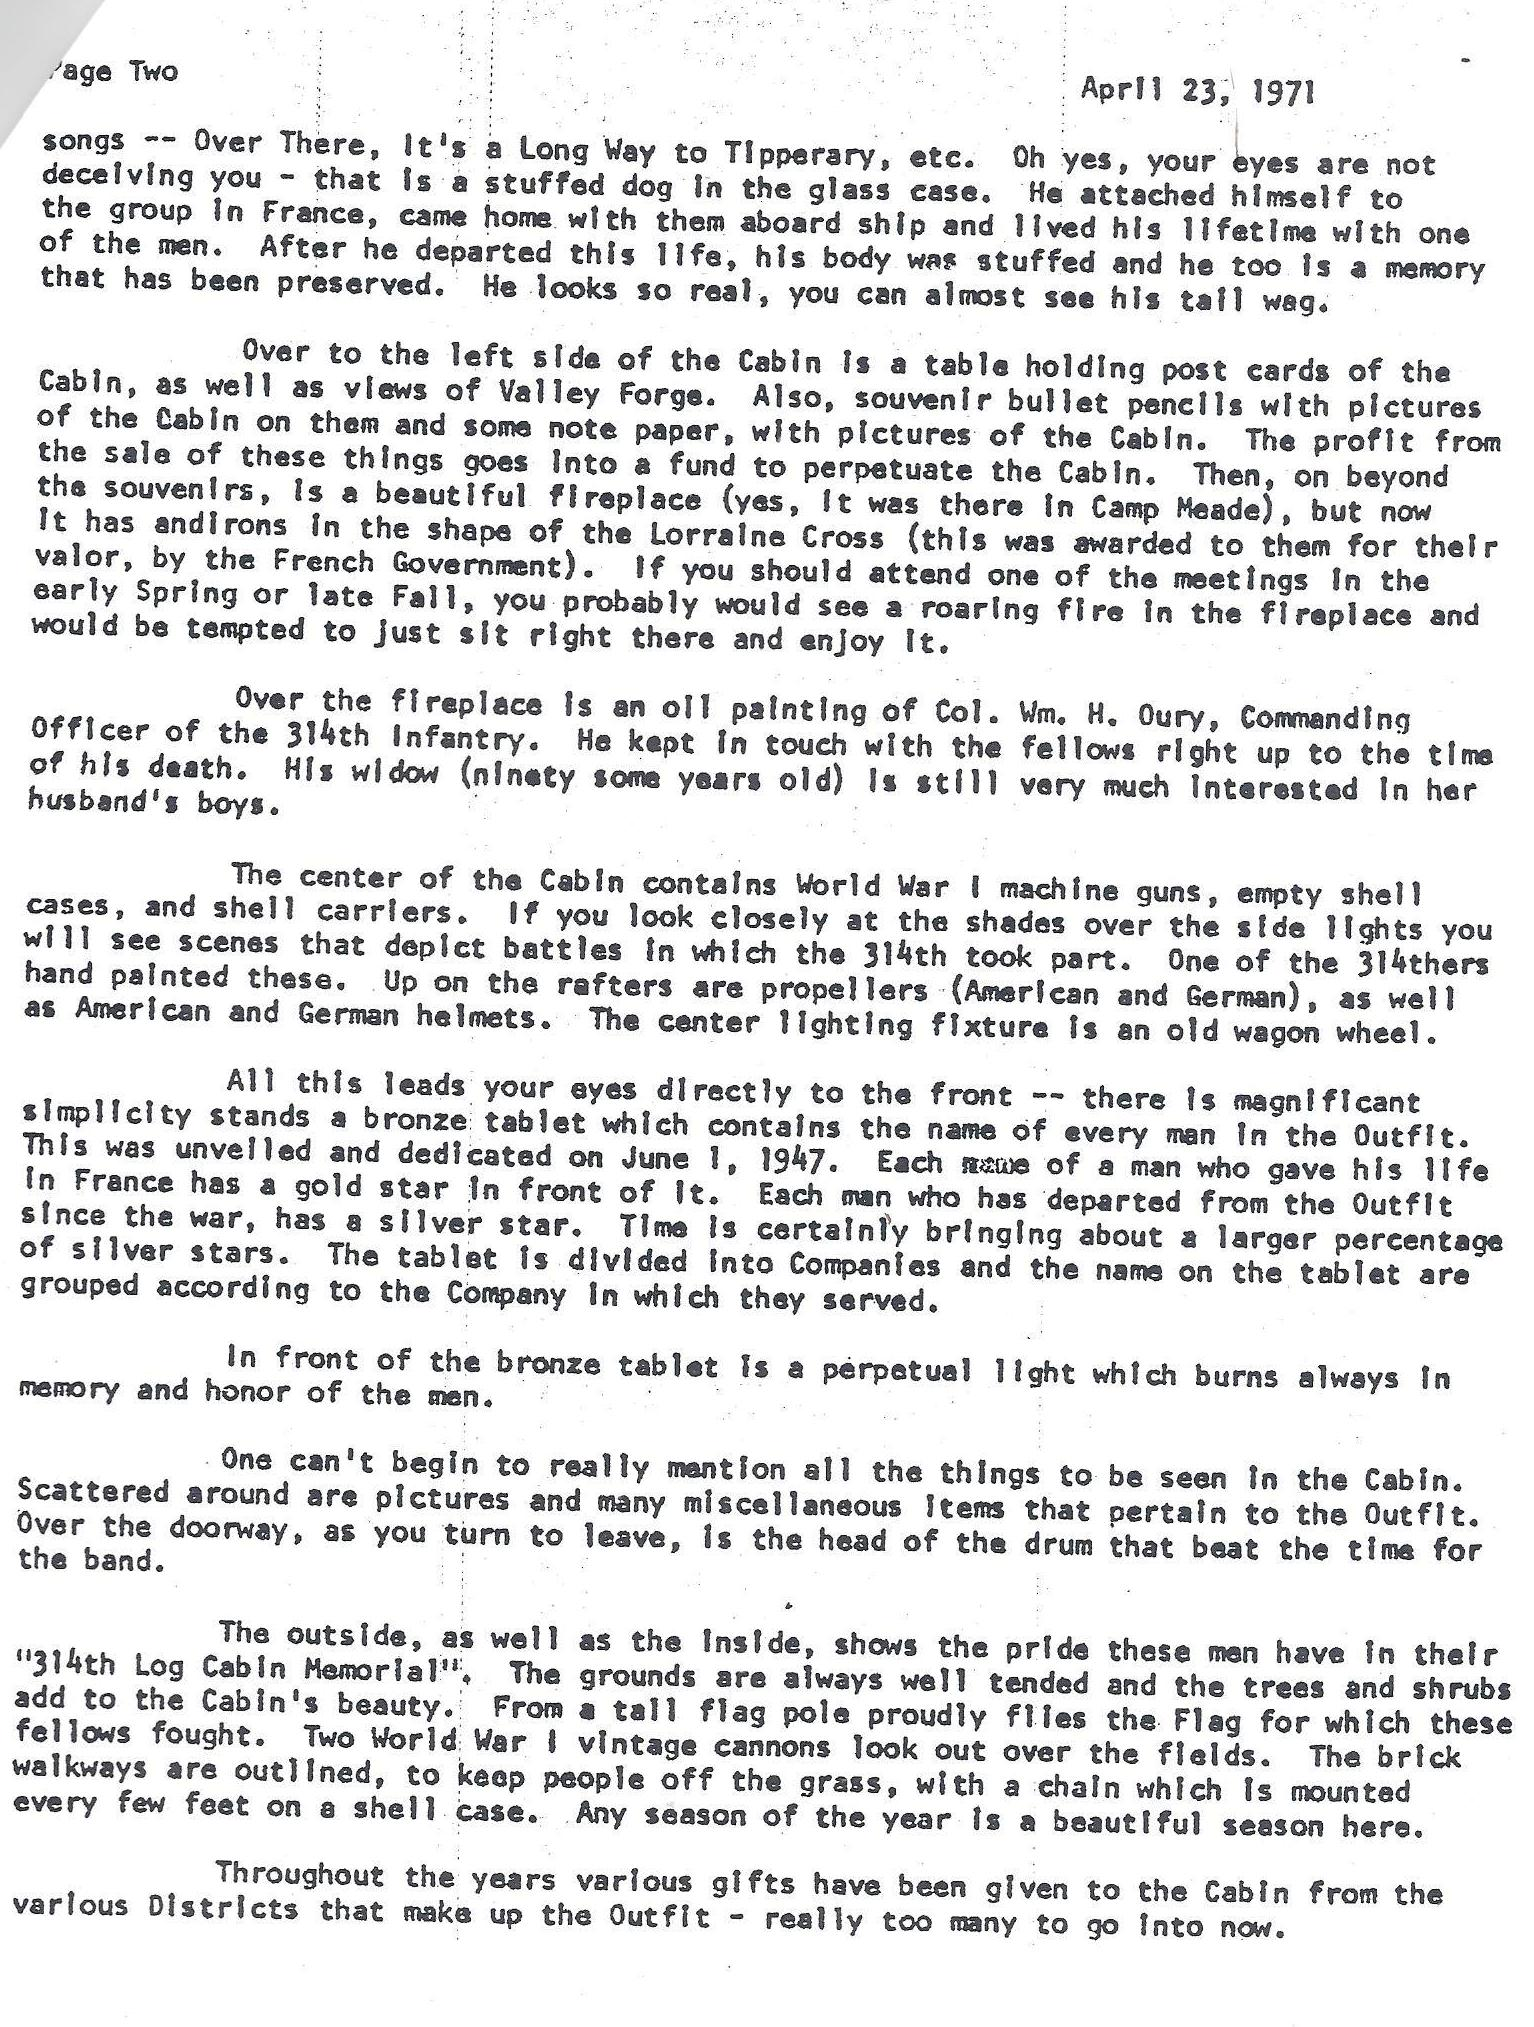 Log Cabin Memorial - Veterans 314th Infantry Regiment A.E.F. - Mary E. Robinson Letter - 1970 - Page 2